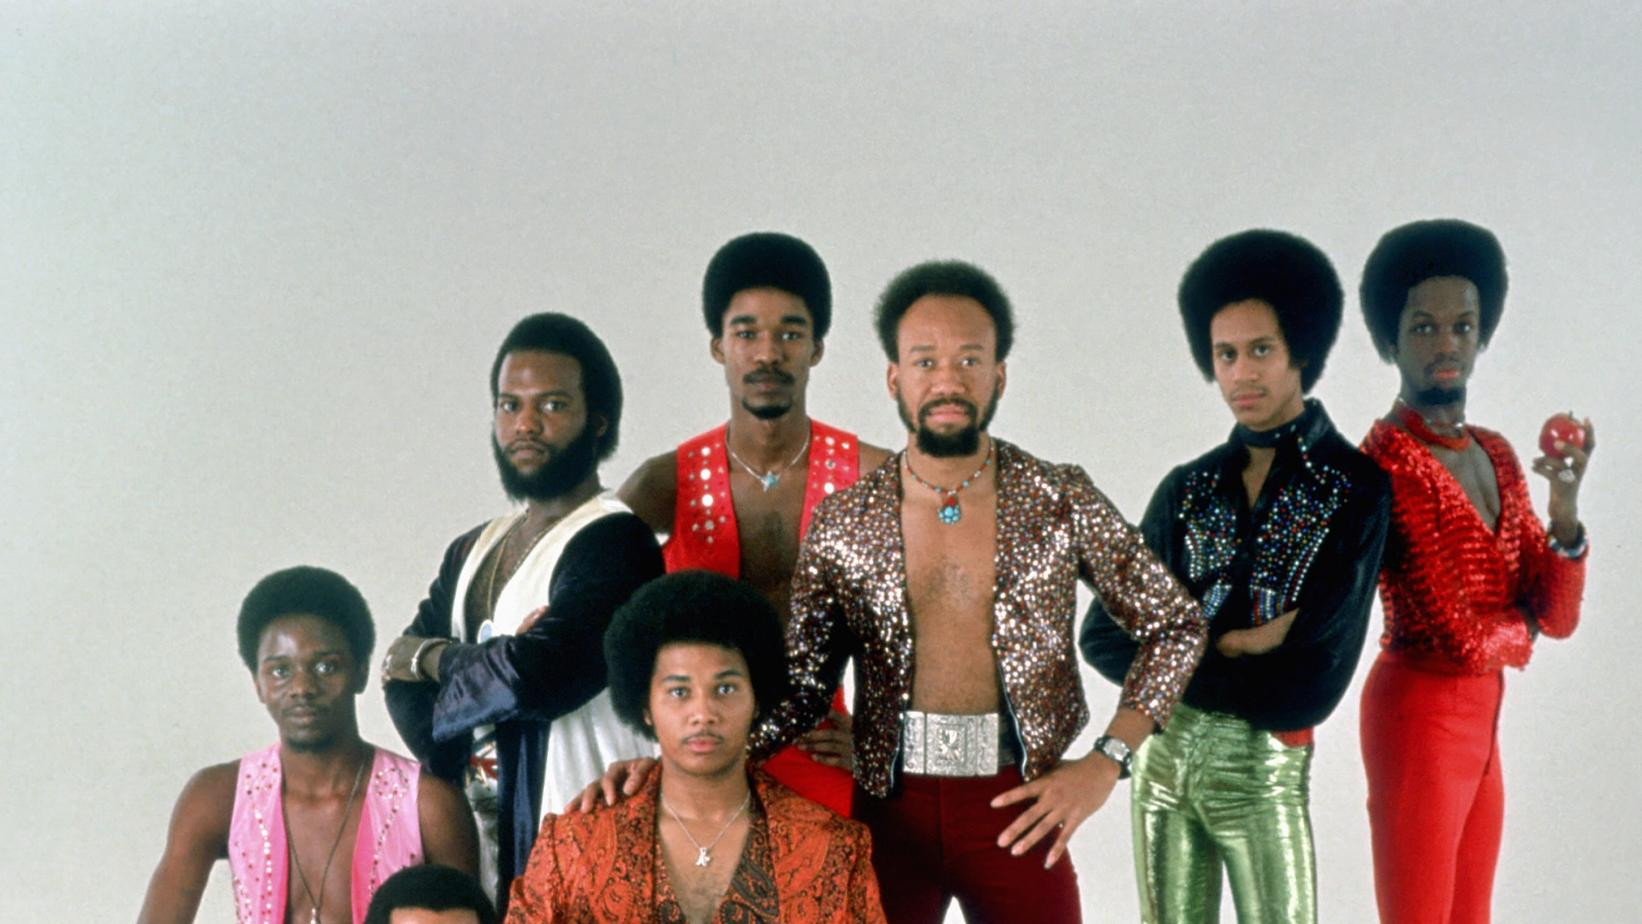 Earth, Wind & Fire, promotional image